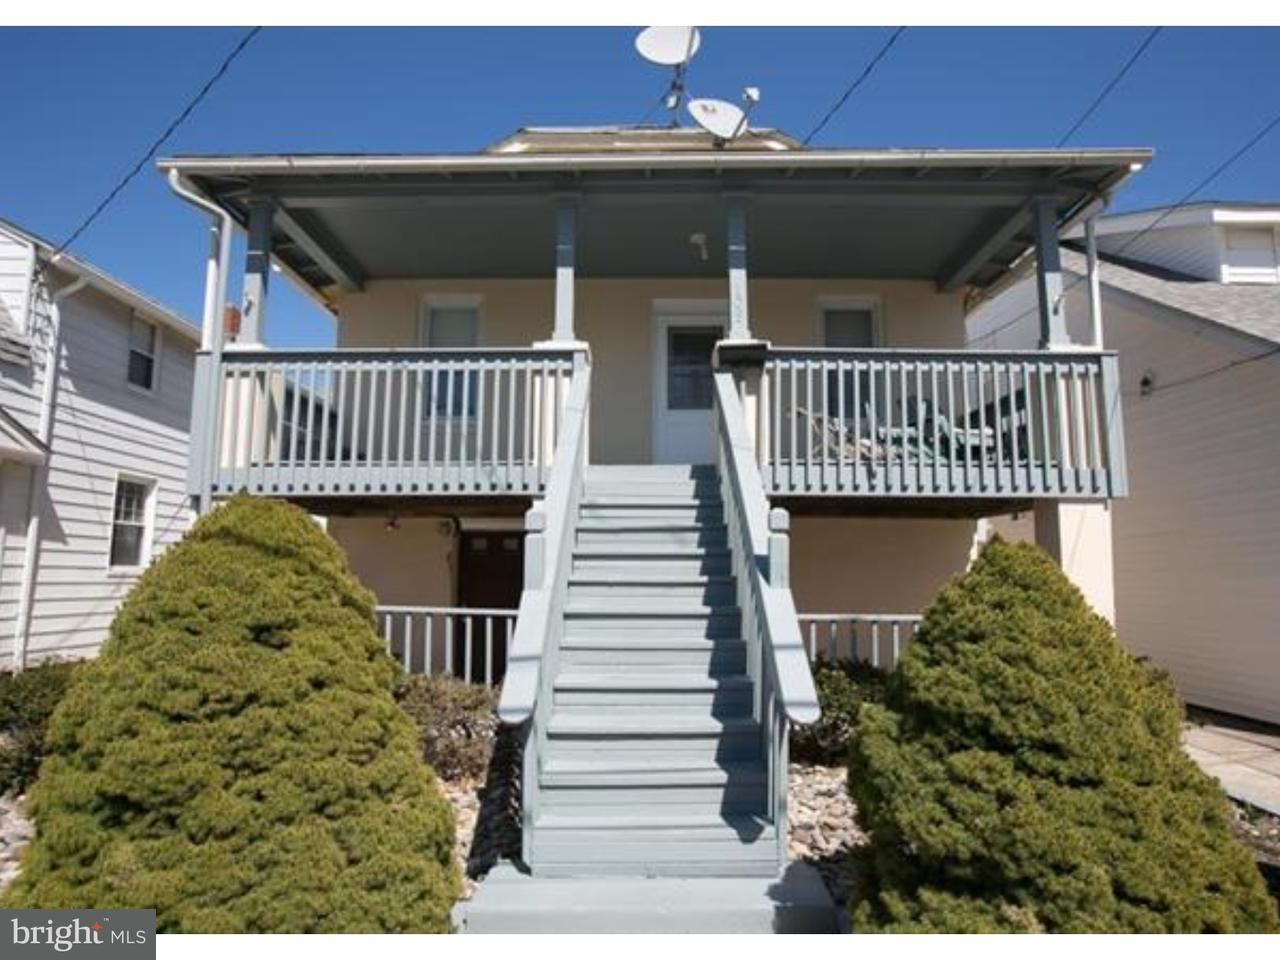 Duplex for Sale at 105 N RICHARDS Avenue Ventnor City, New Jersey 08406 United States